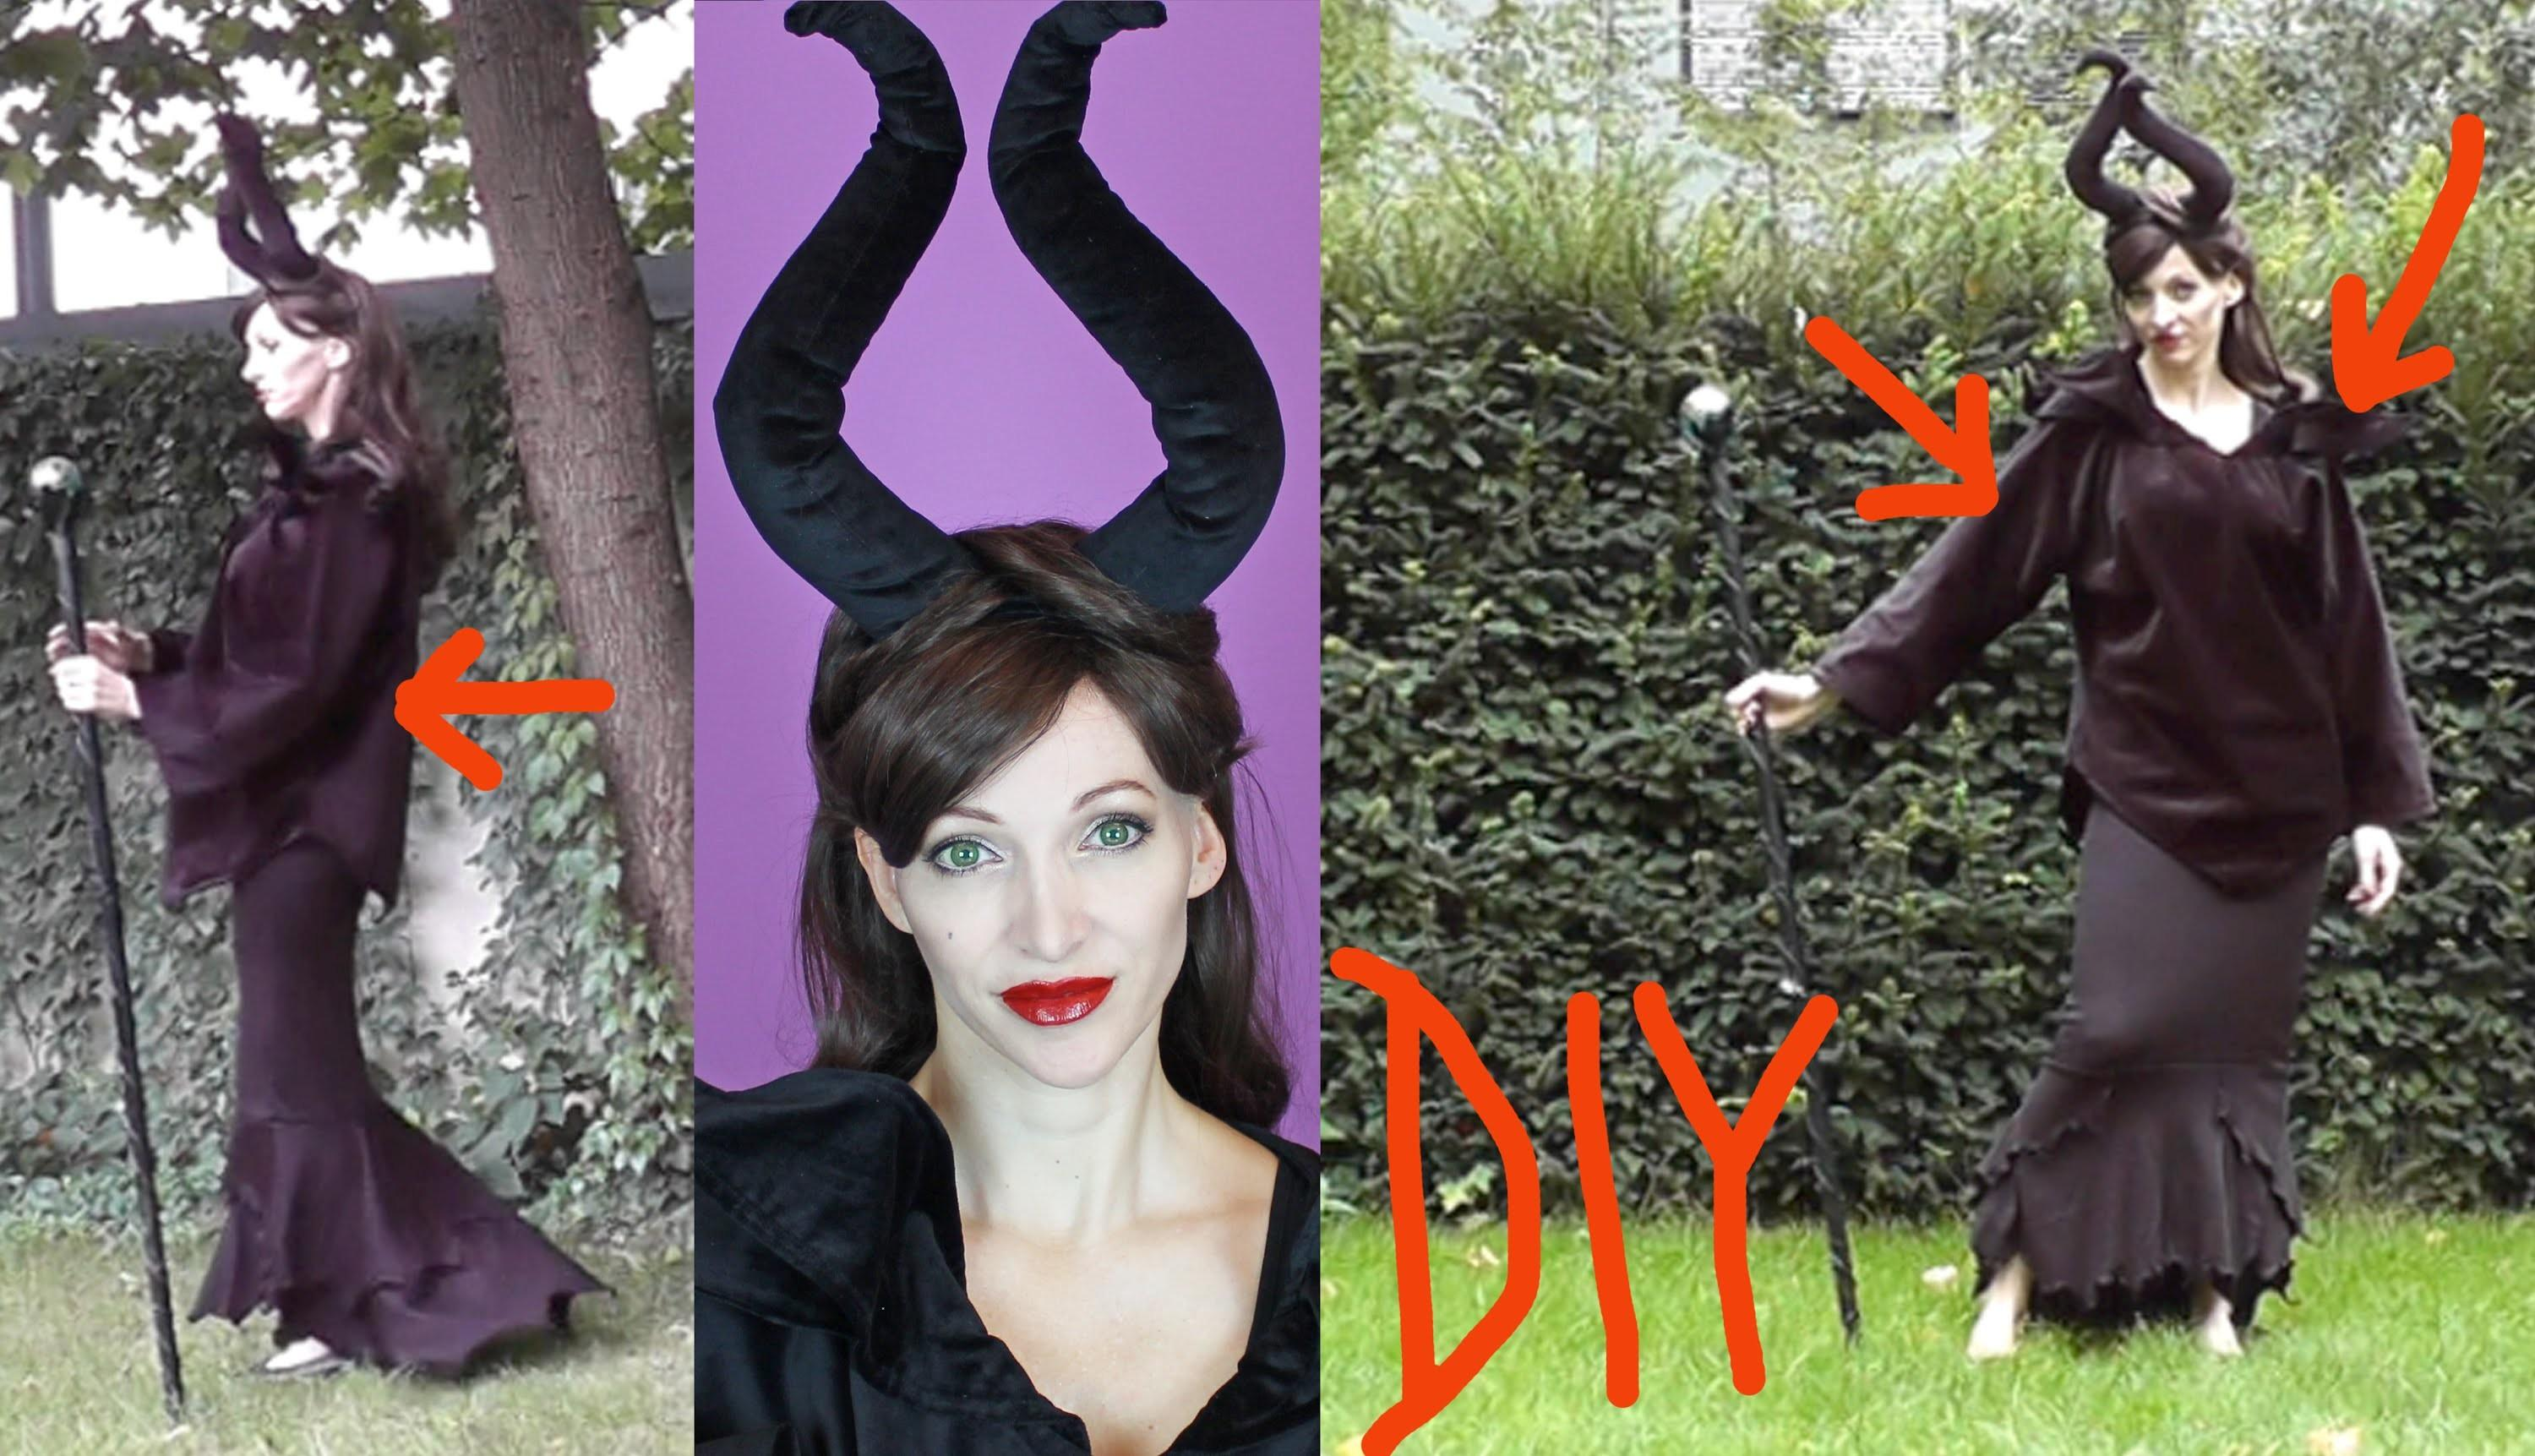 Diy Kost Zloby Lovny Ern Magie Maleficent